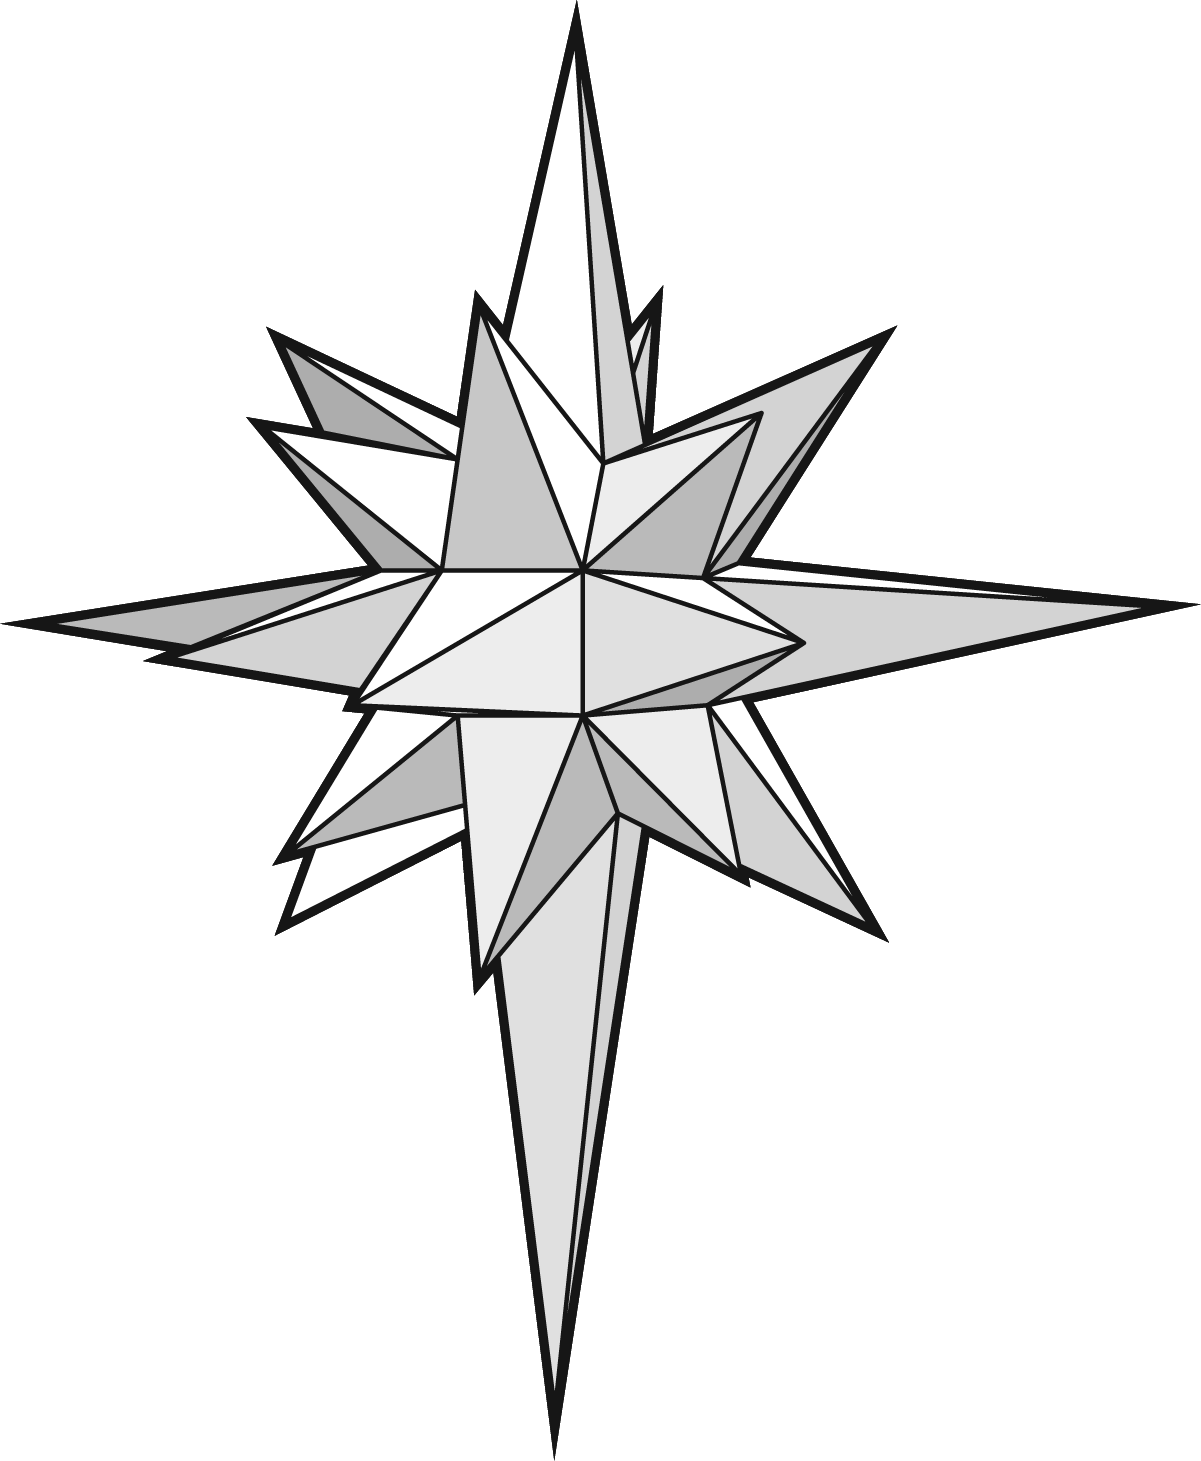 1201x1461 26 Point 3d Paper Star Of Bethlehem Pattern And Instructions